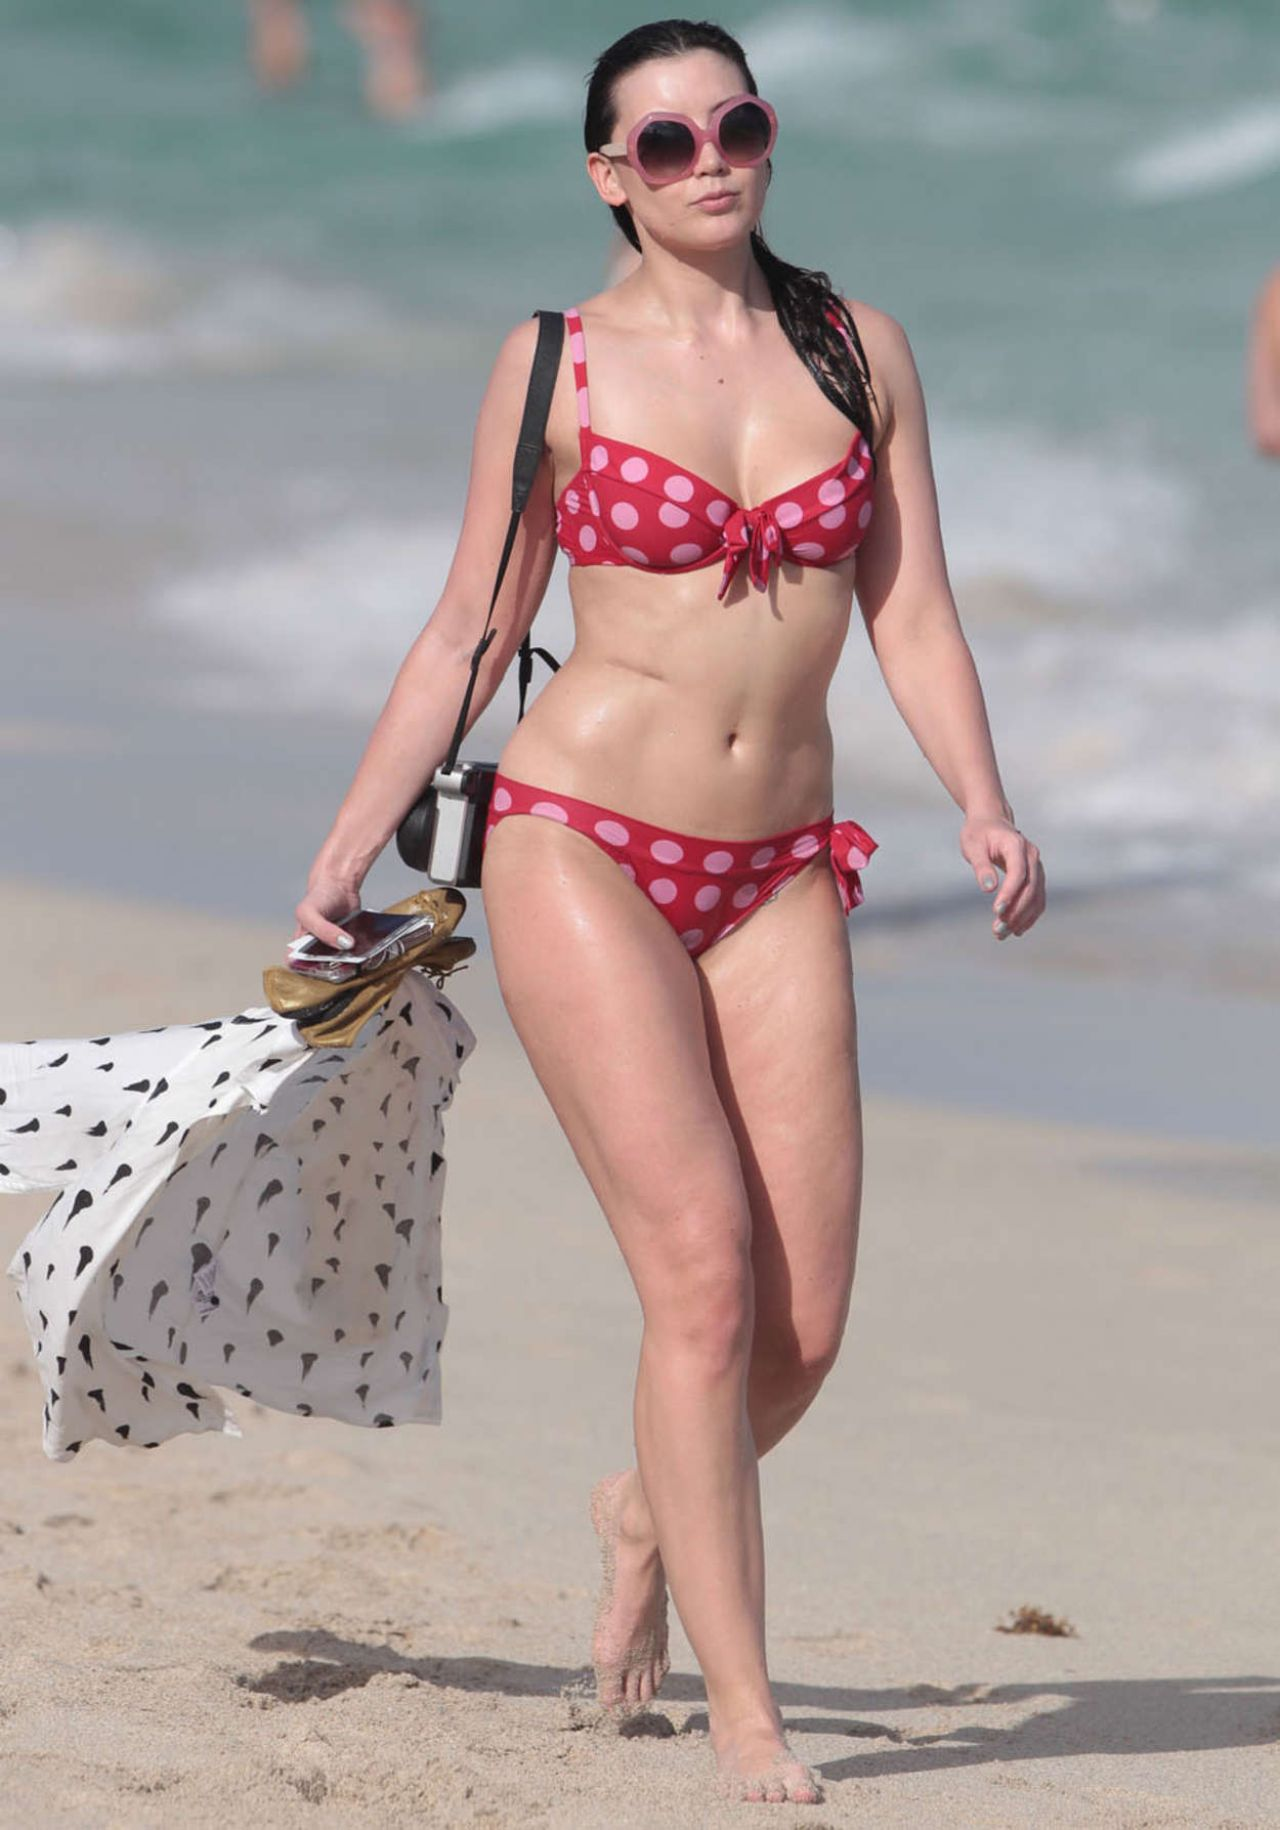 Daisy lowe bikini naked (73 pictures)